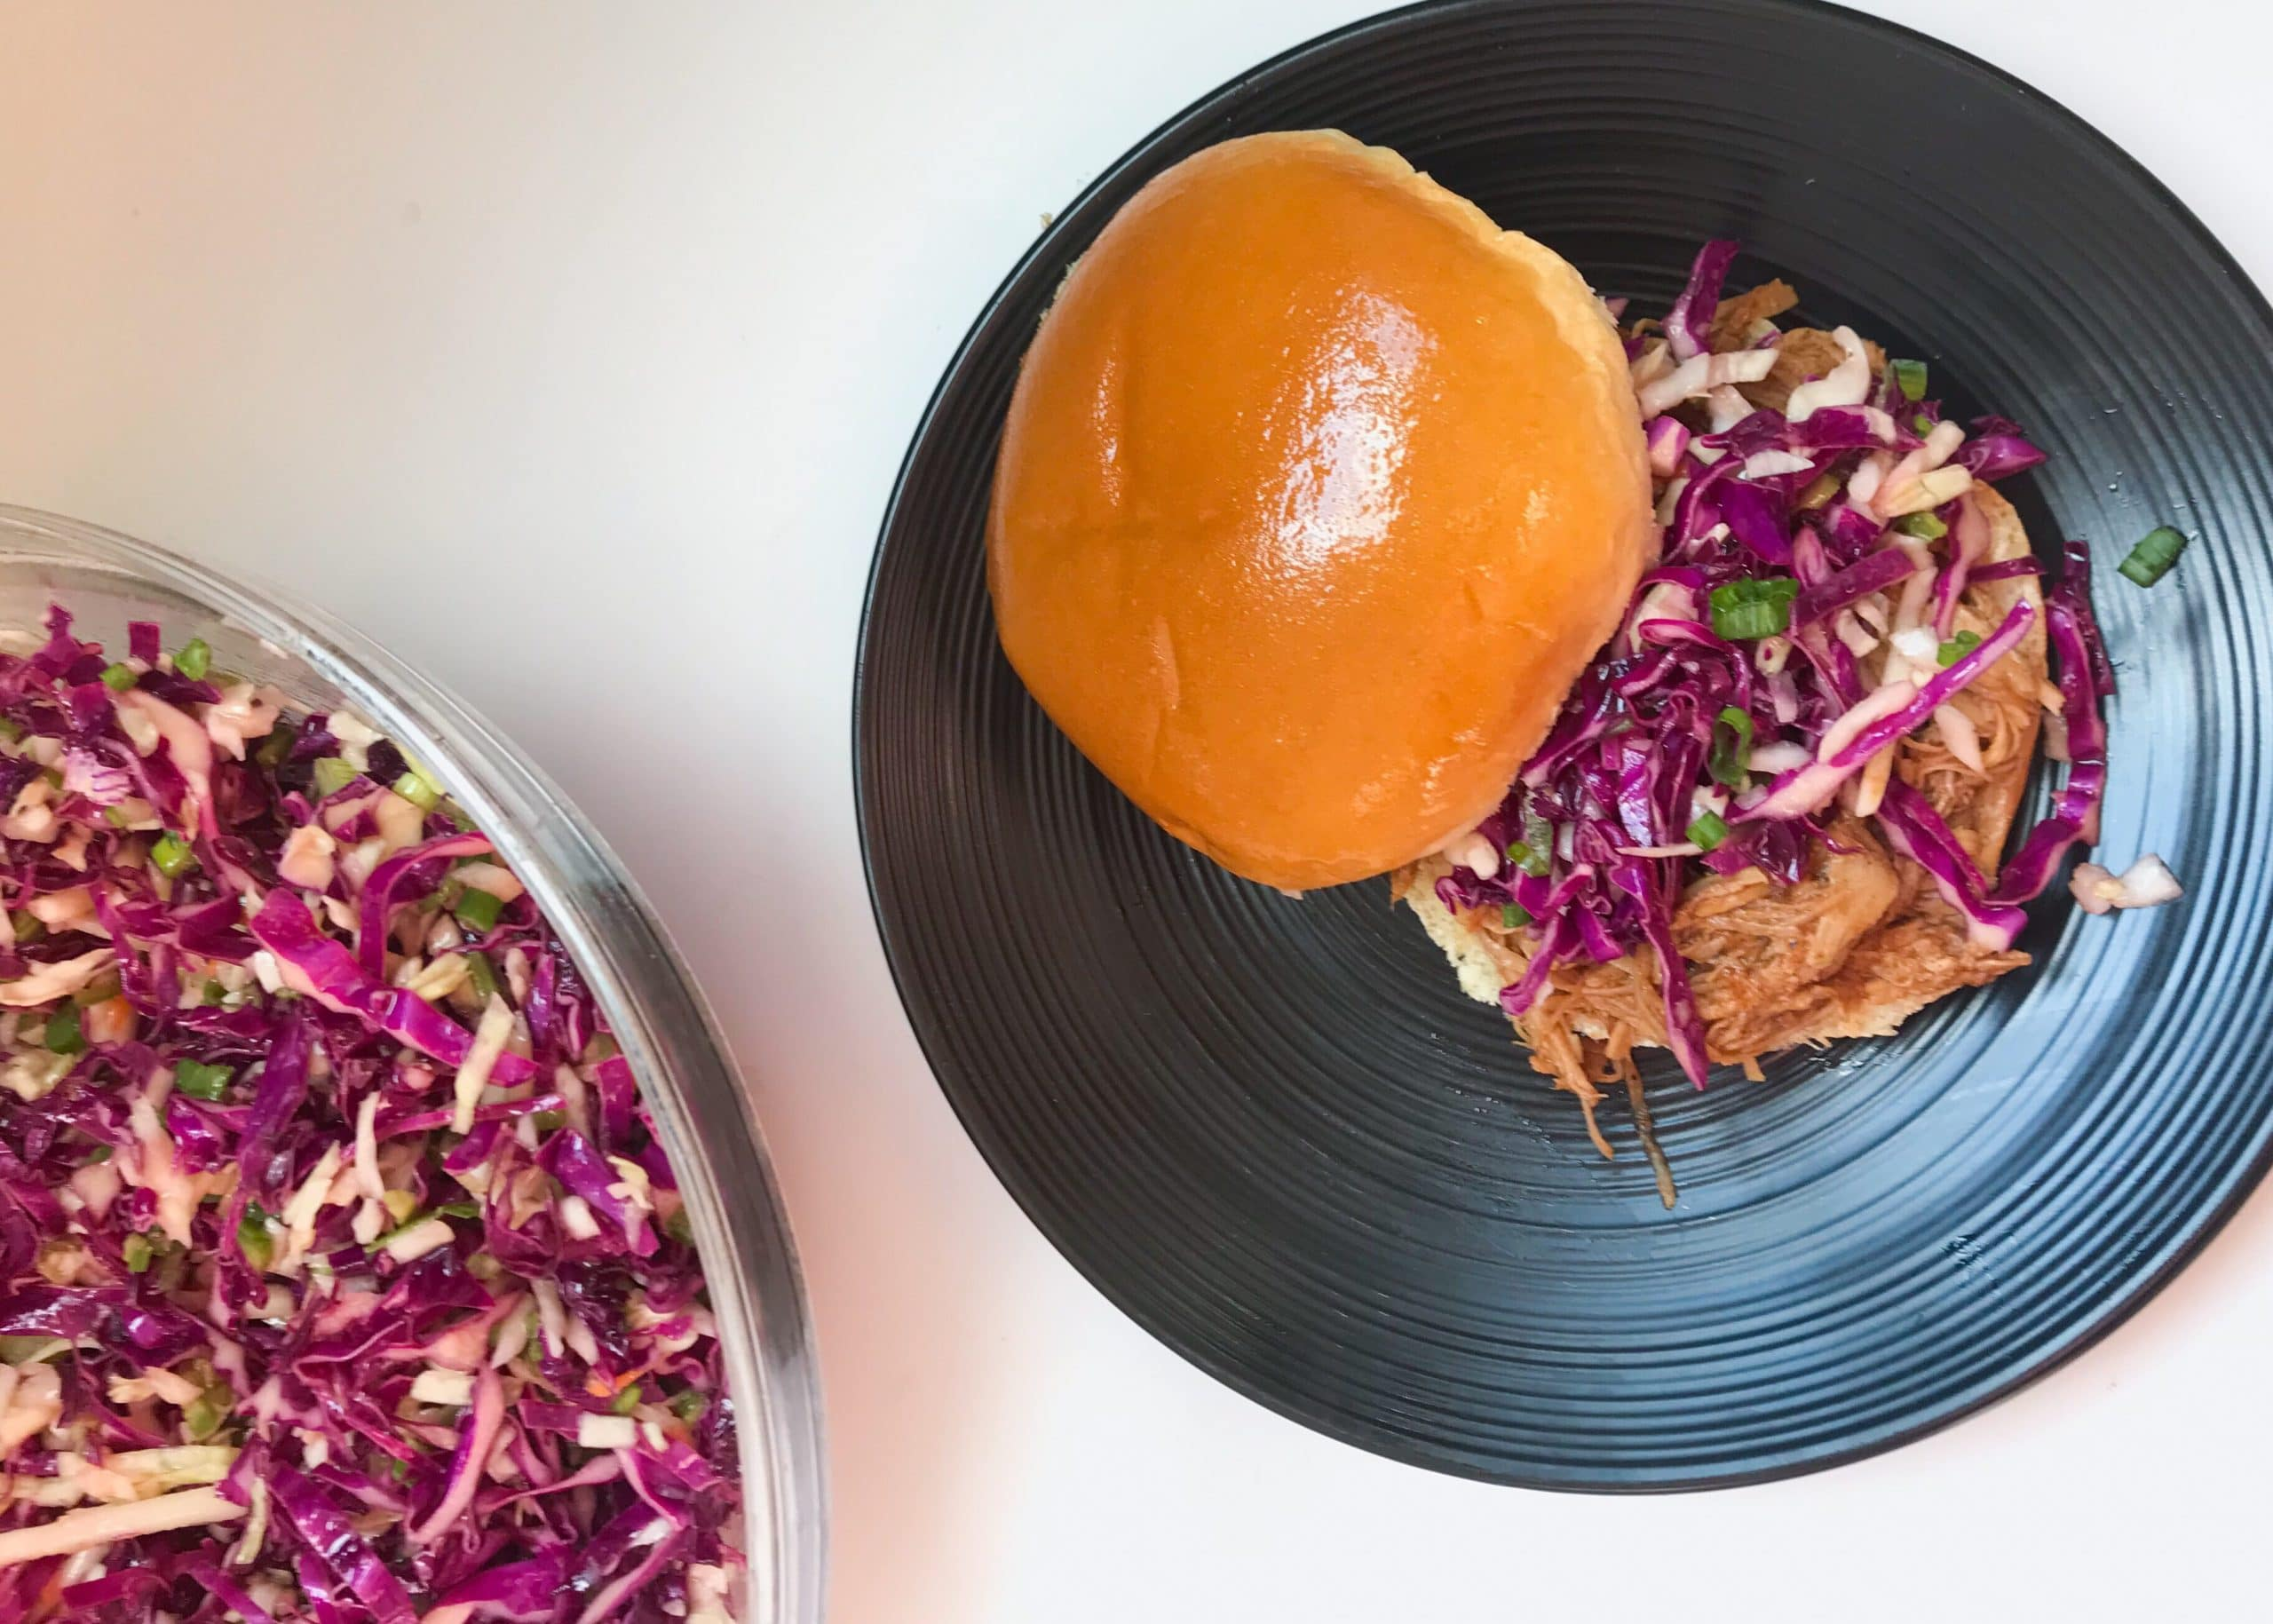 The Instant Pot turns the pork roast into juicy pulled pork far faster than the alternative options. The slightly spicy and crunchy Jalapeño Slaw perfectly pairs with the juiciness and sweetness of the barbecue pulled pork. The recipe includes slow cooker instructions. Recipe at KathleensCravings.Com. #InstantPot #InstantPotPulledPork #JalapenoSlaw #SummerEats #CookoutFood #CrowdPleasingFood #Sliders #SlowCooker